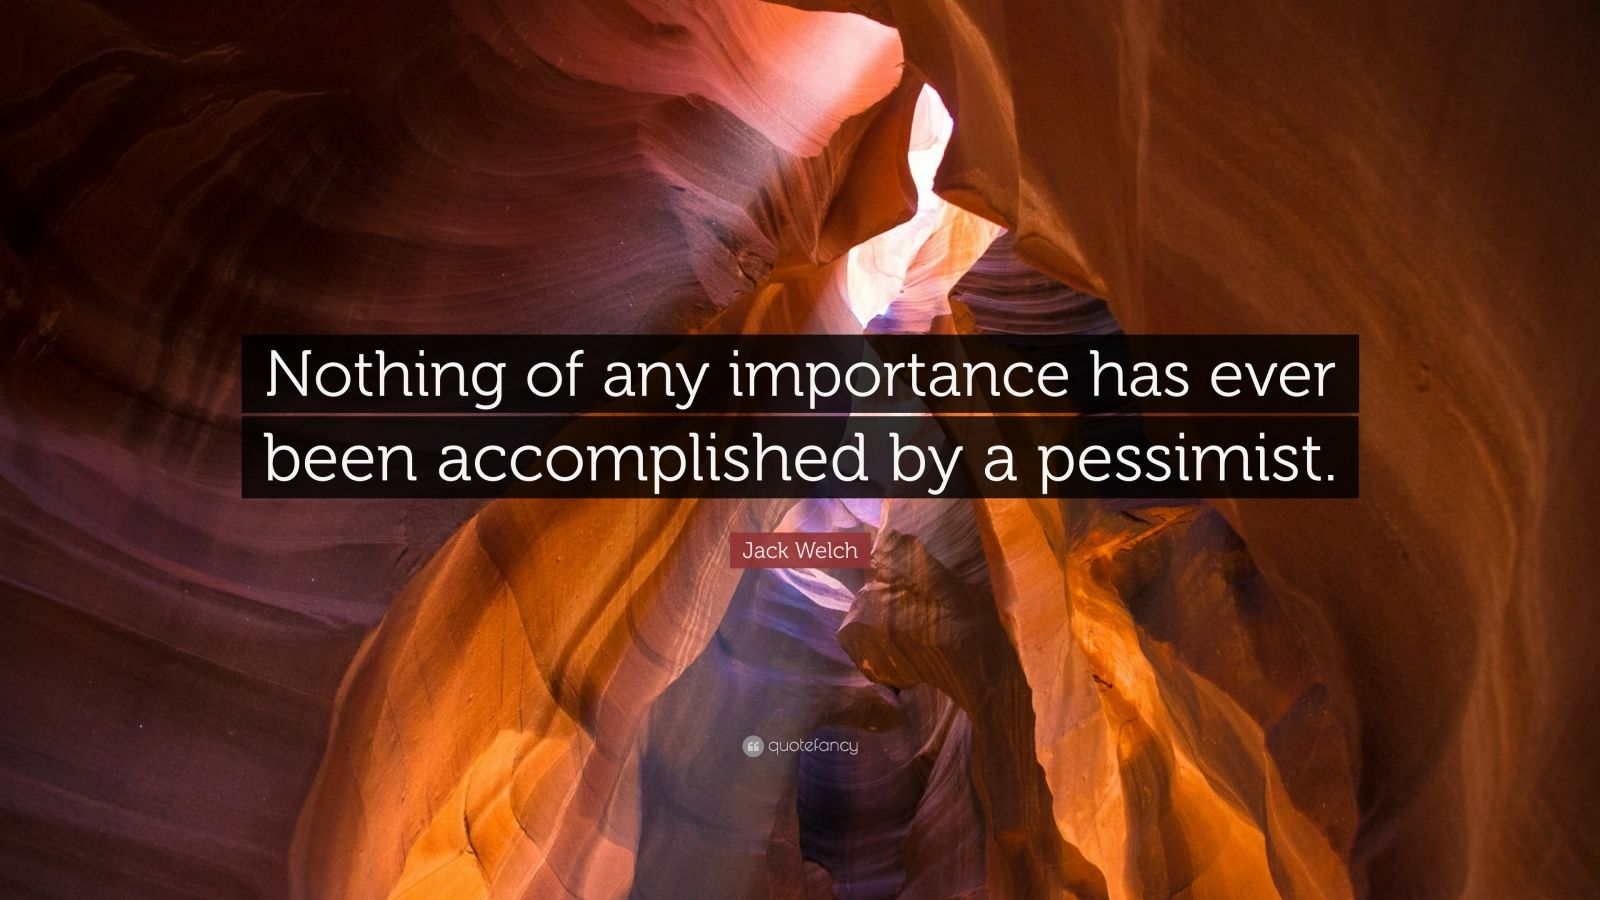 """Jack Welch Quote: """"Nothing of any importance has ever been accomplished by a pessimist."""""""